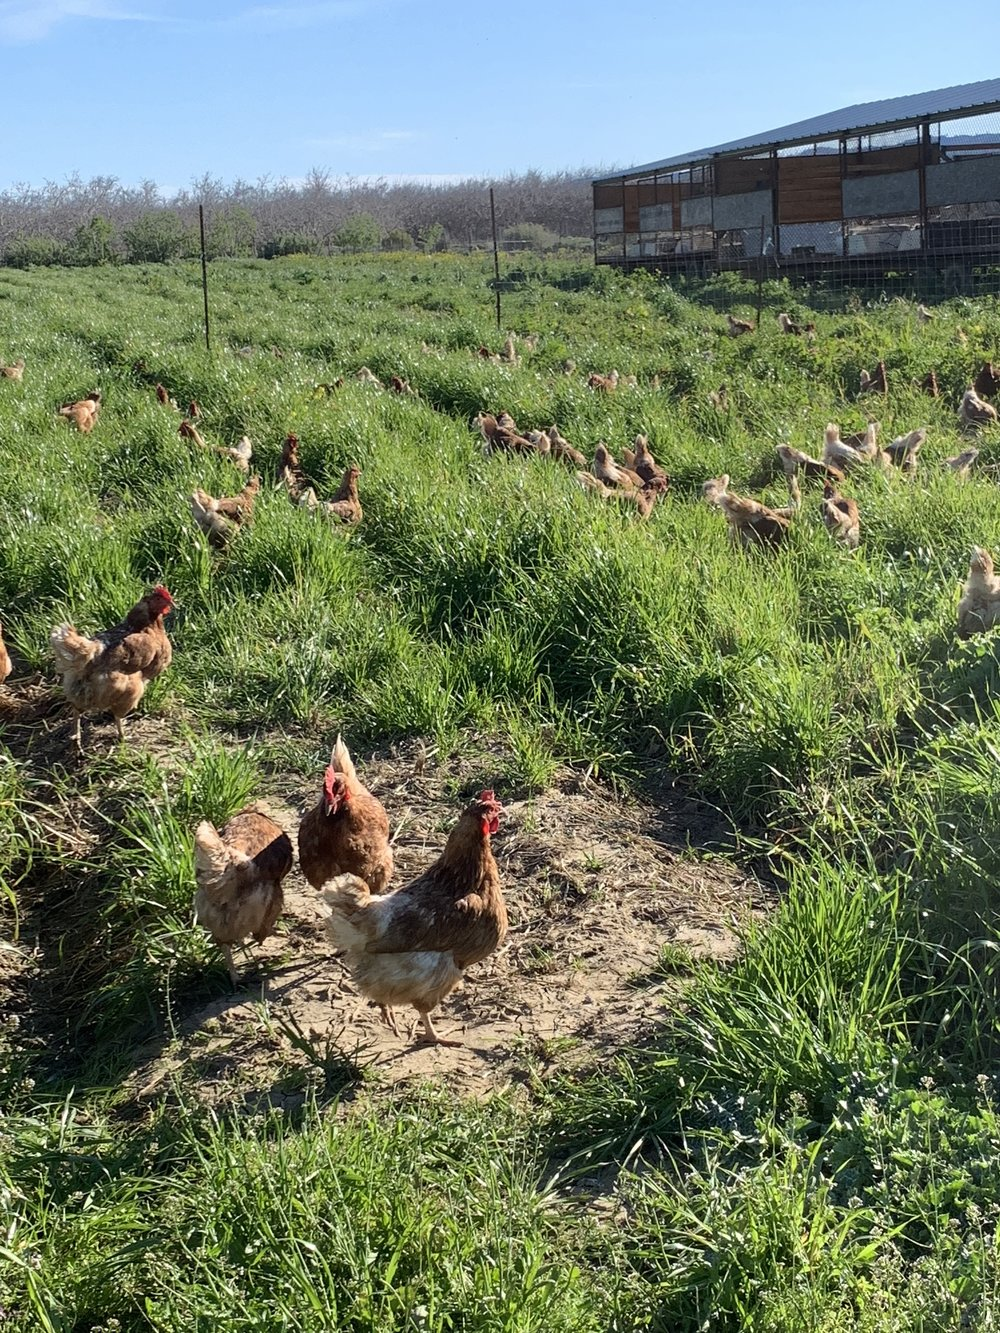 Chickens in an old field of greens